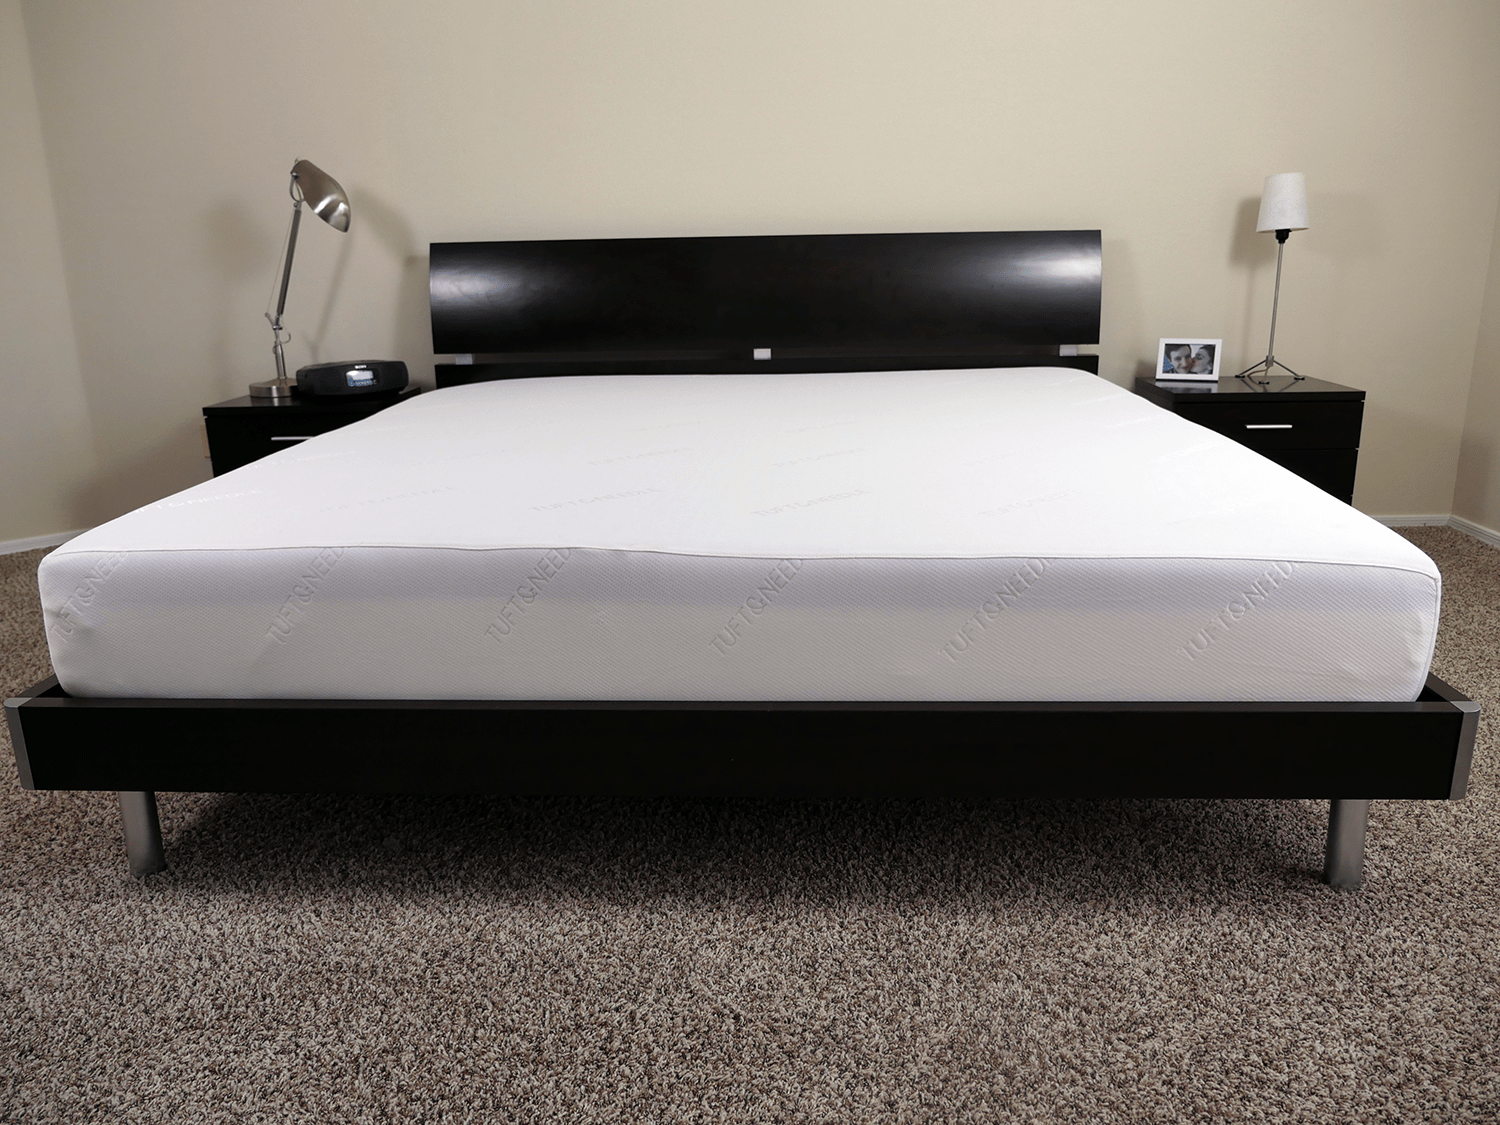 Tuft and Needle mattress, King size on slat bed